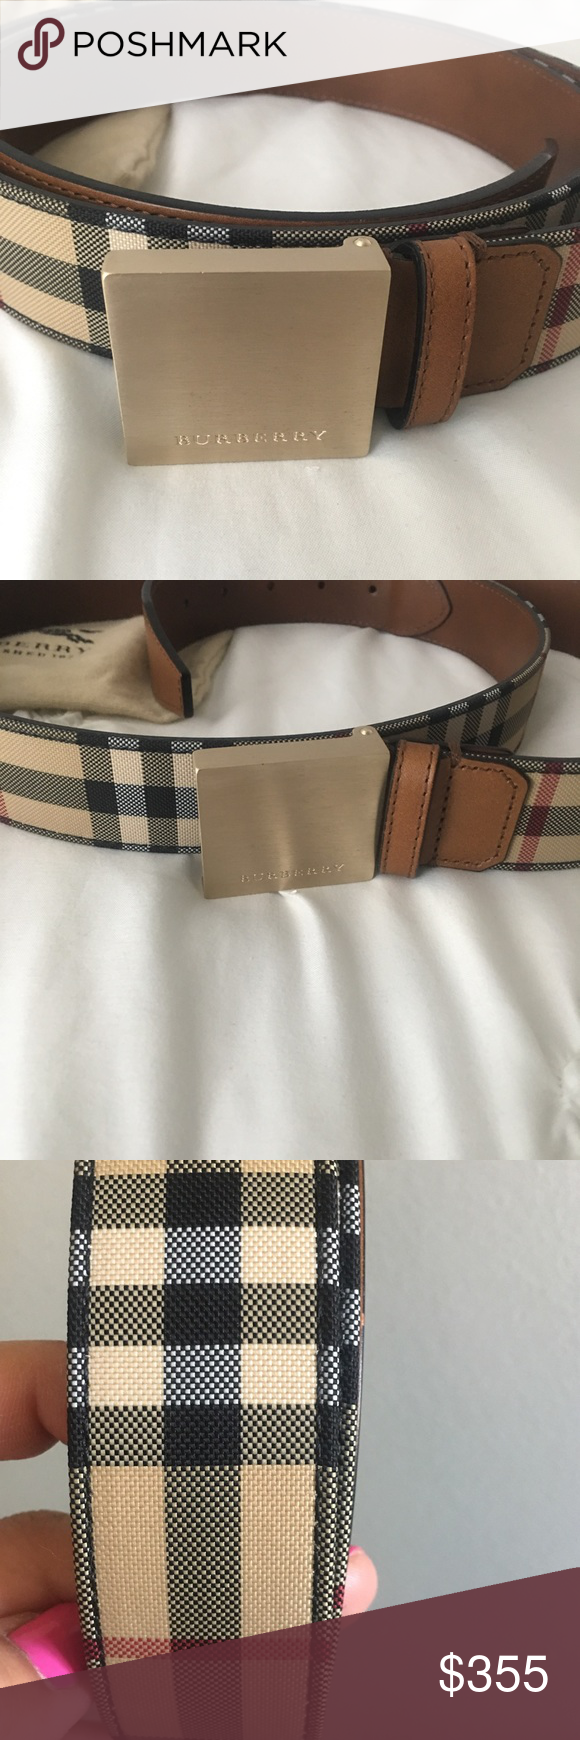 faae6035cc61 New authentic Burberry men s belt New Burberry men s belt comes with the  duffle bag Burberry Accessories Belts